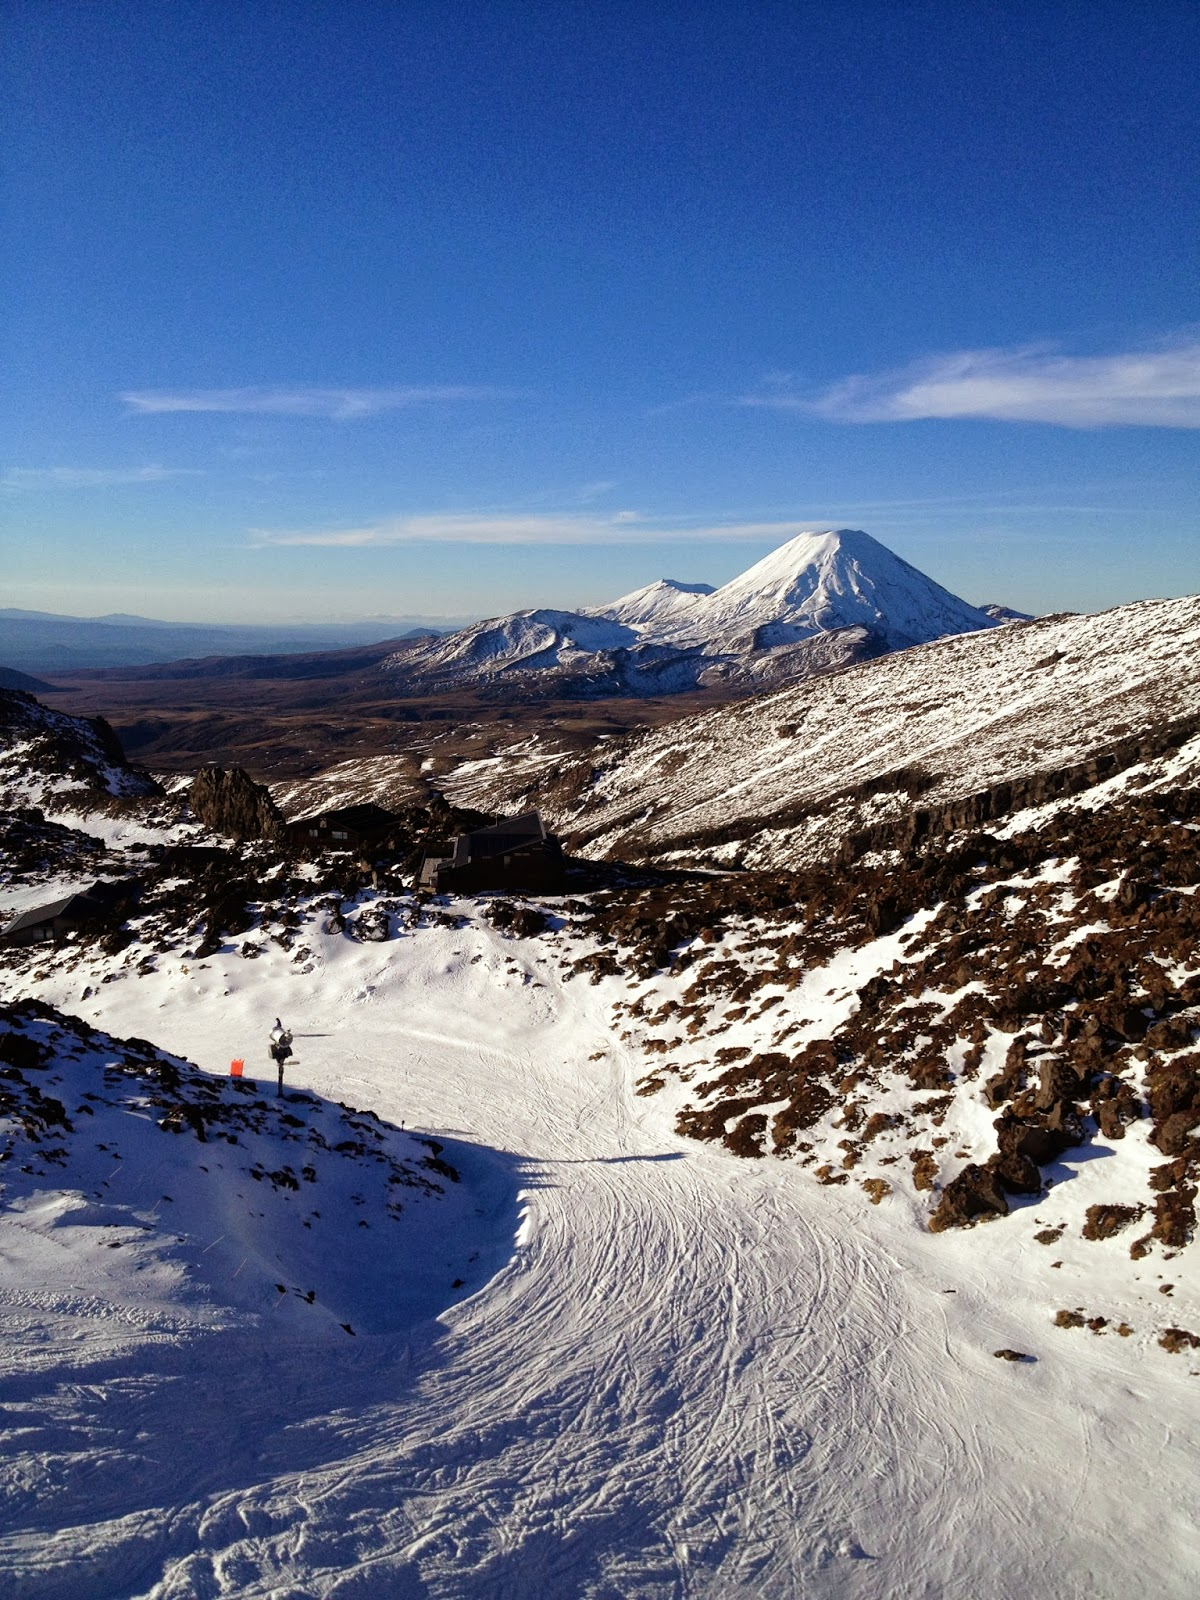 how to get to mt ruapehu from auckland